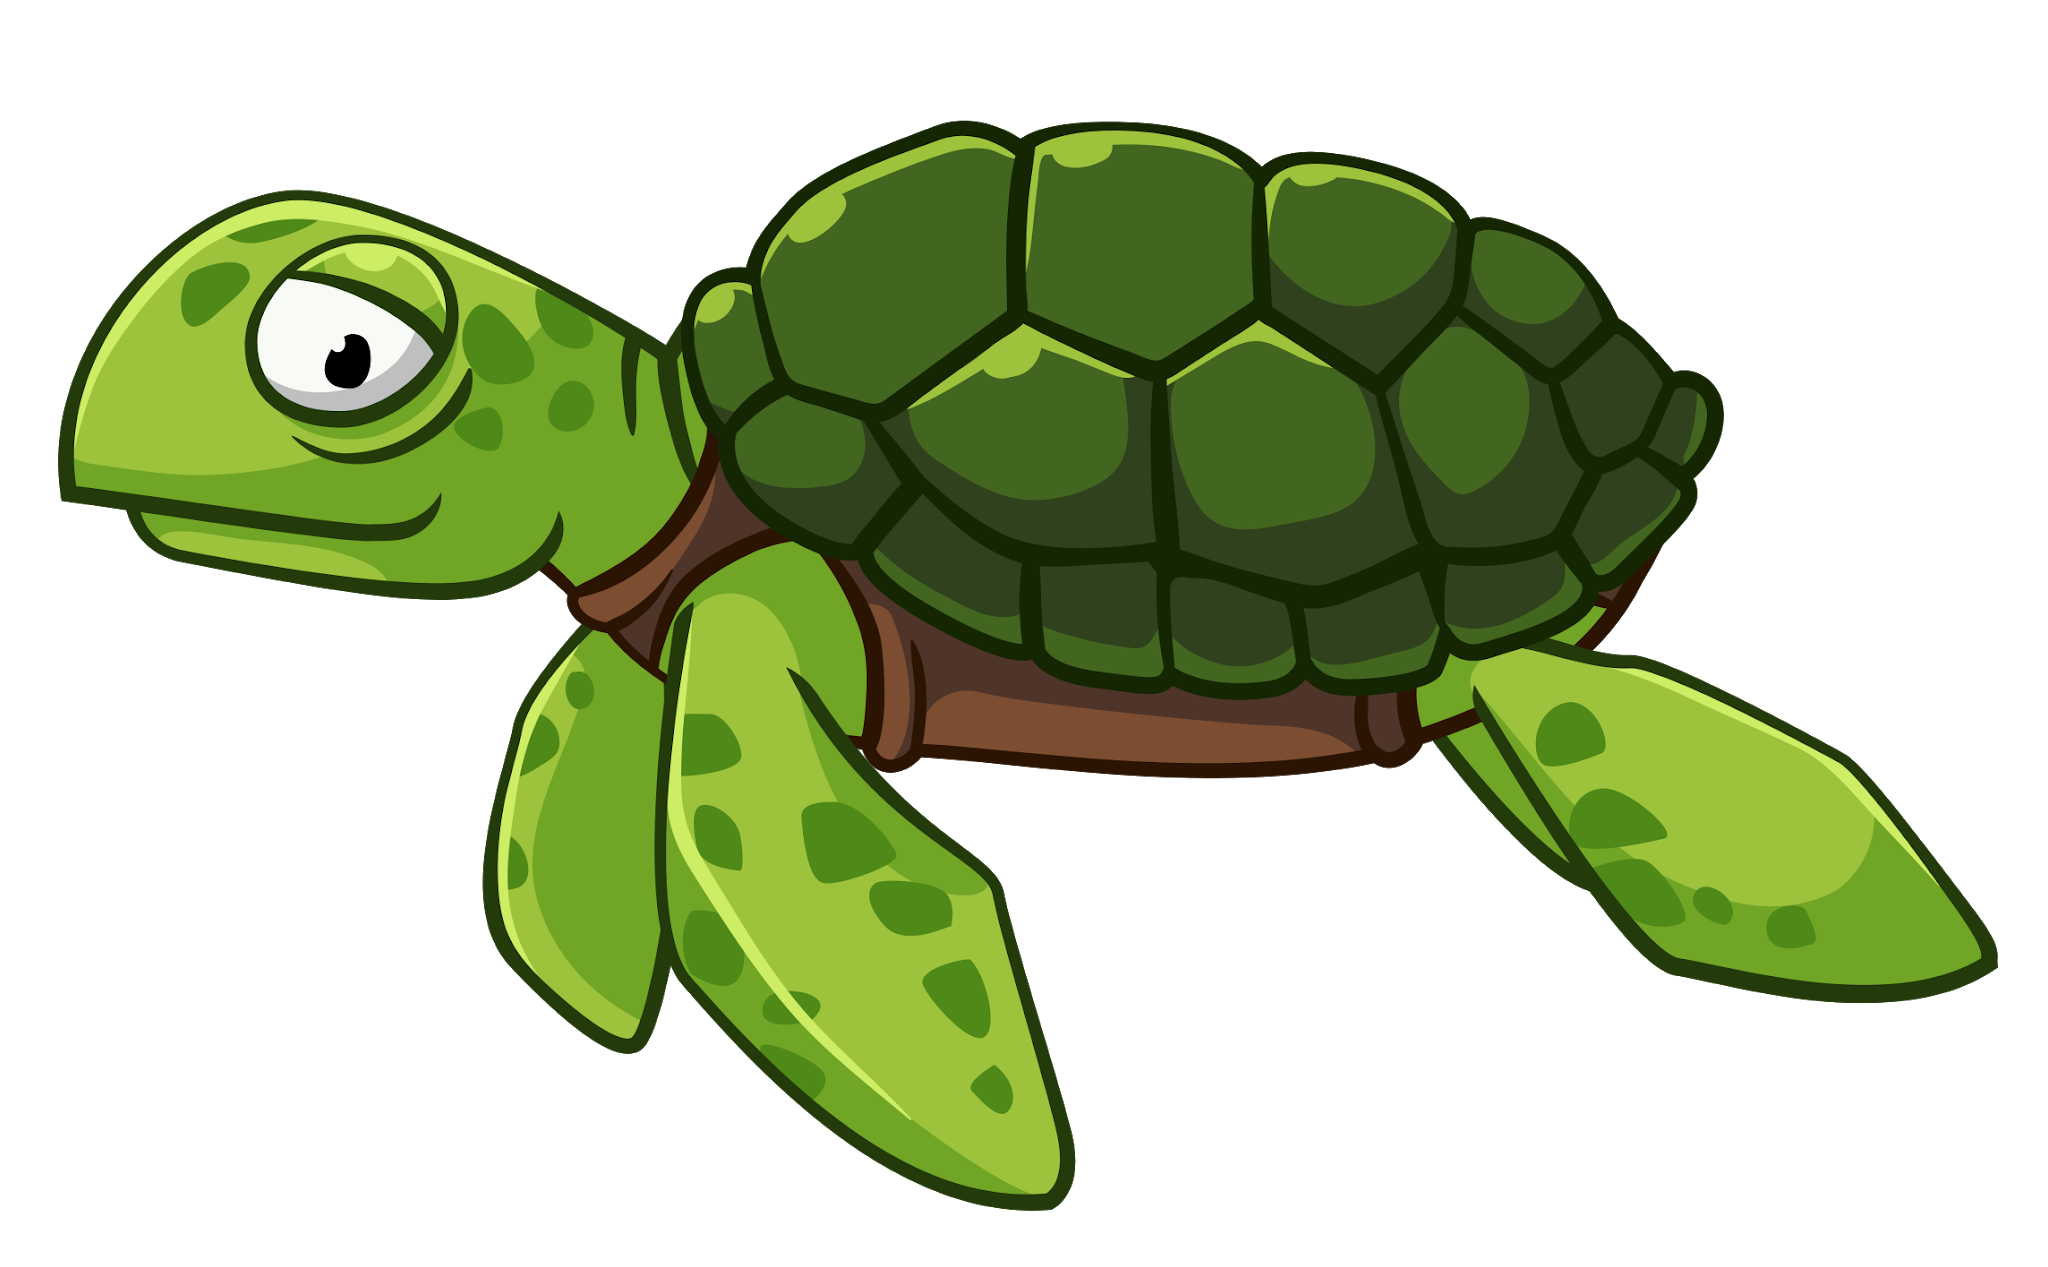 Pin by pngsector on. Clipart turtle green turtle